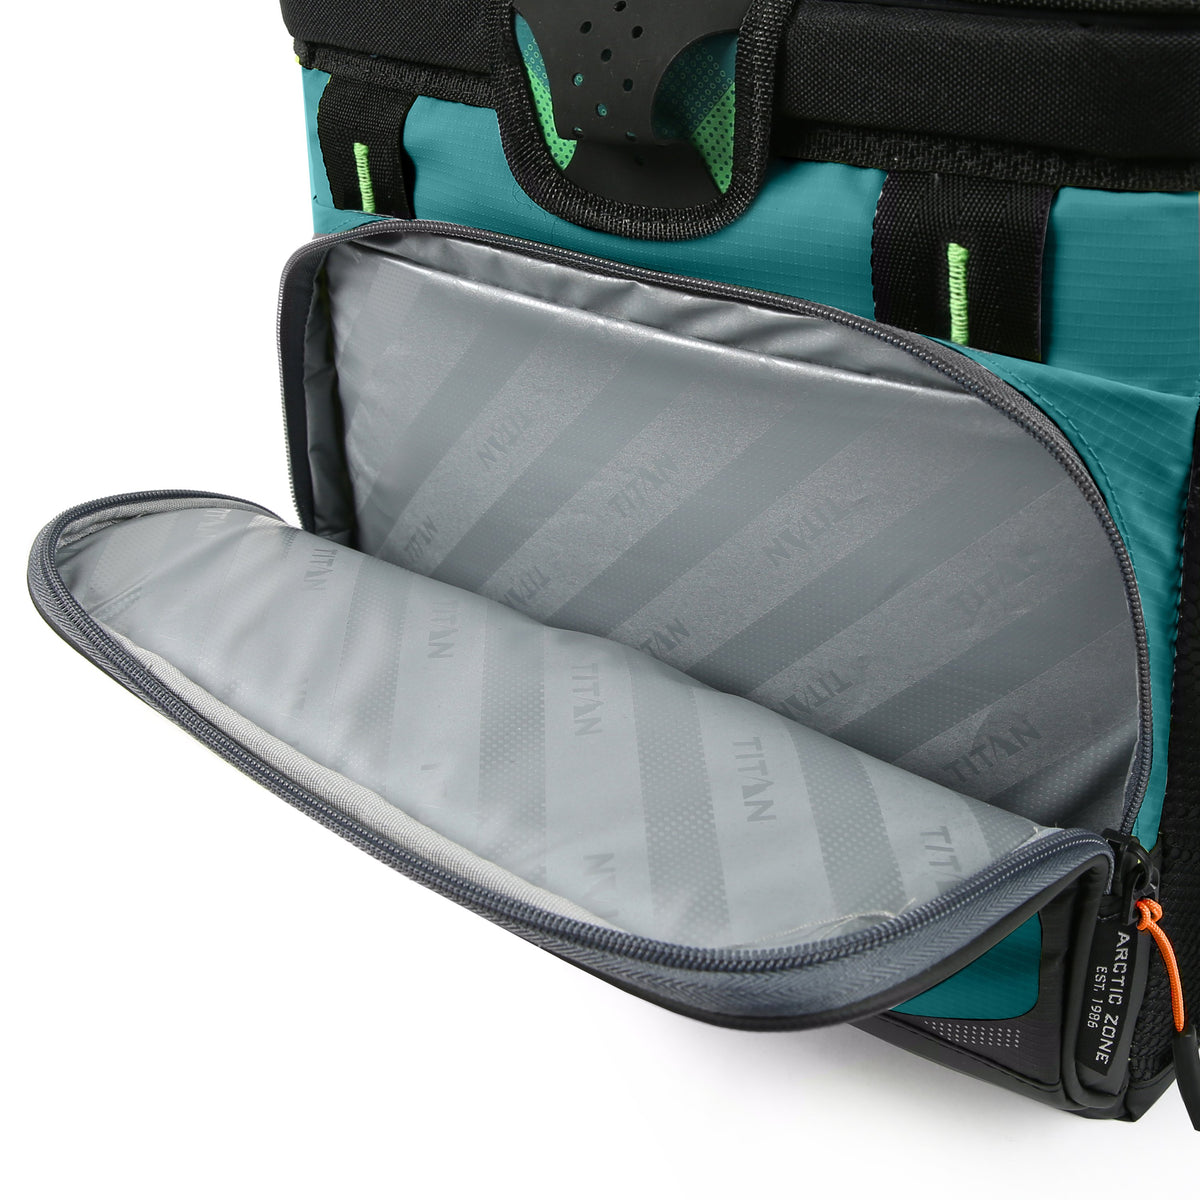 Titan Deep Freeze® 16 Can Zipperless™ HardBody® Cooler - Pine - Insulated front pocket